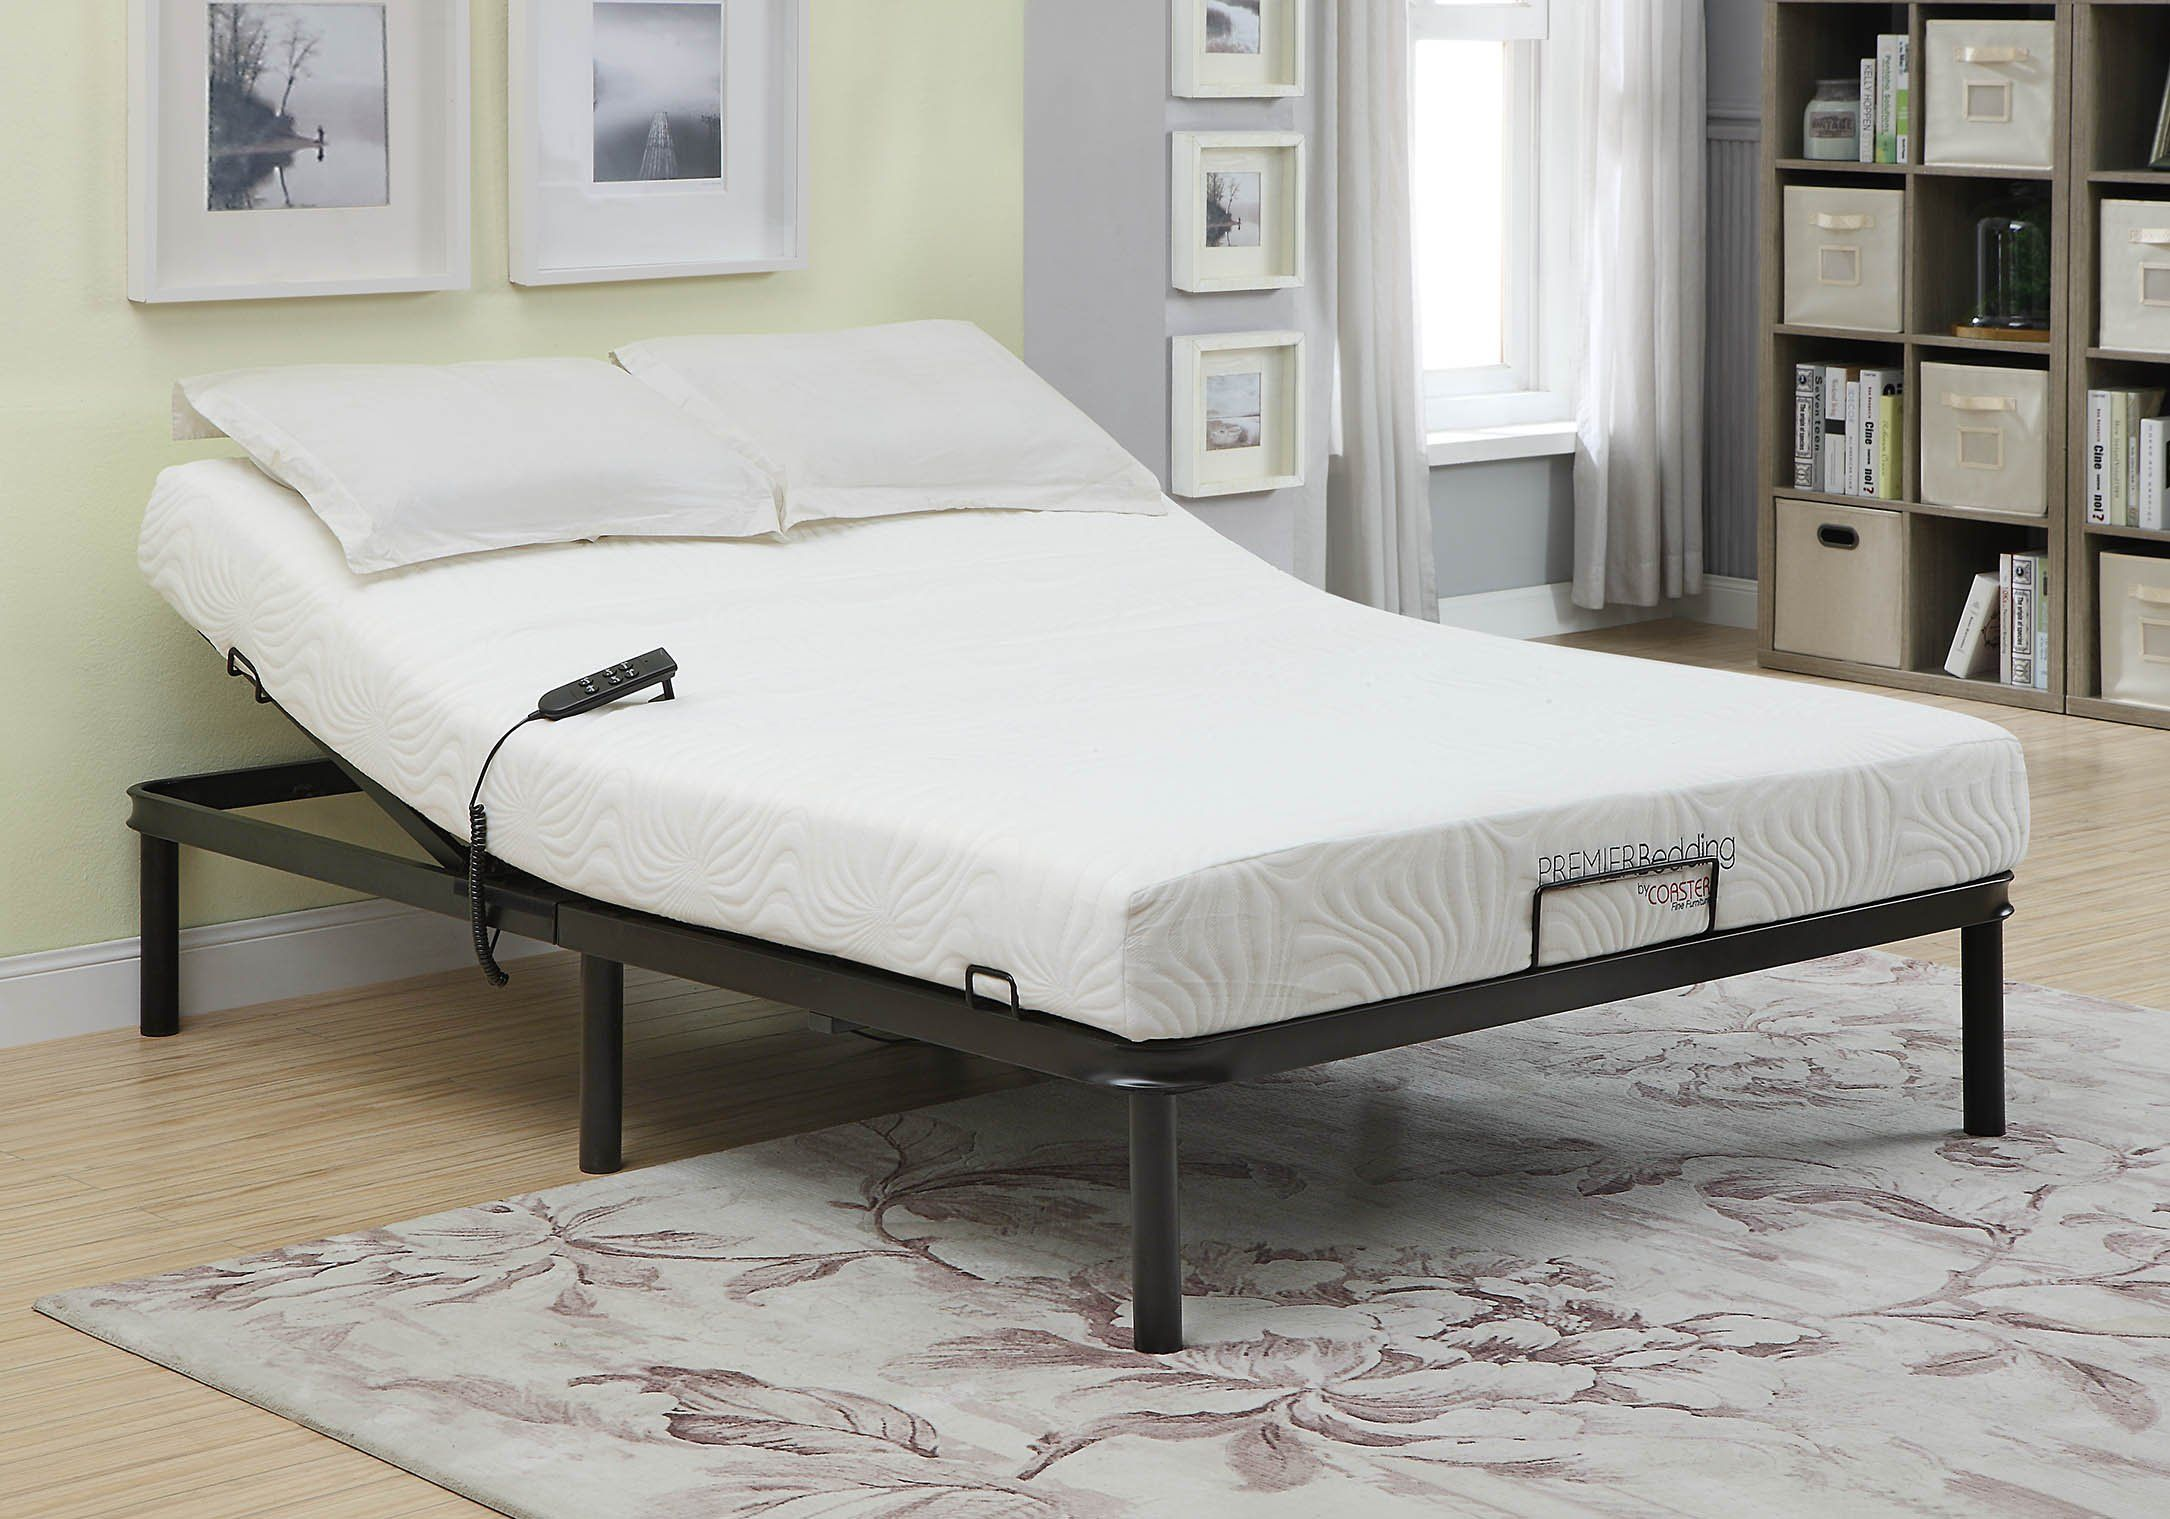 Stanhope Adjustable Base Full Adjustable Bed